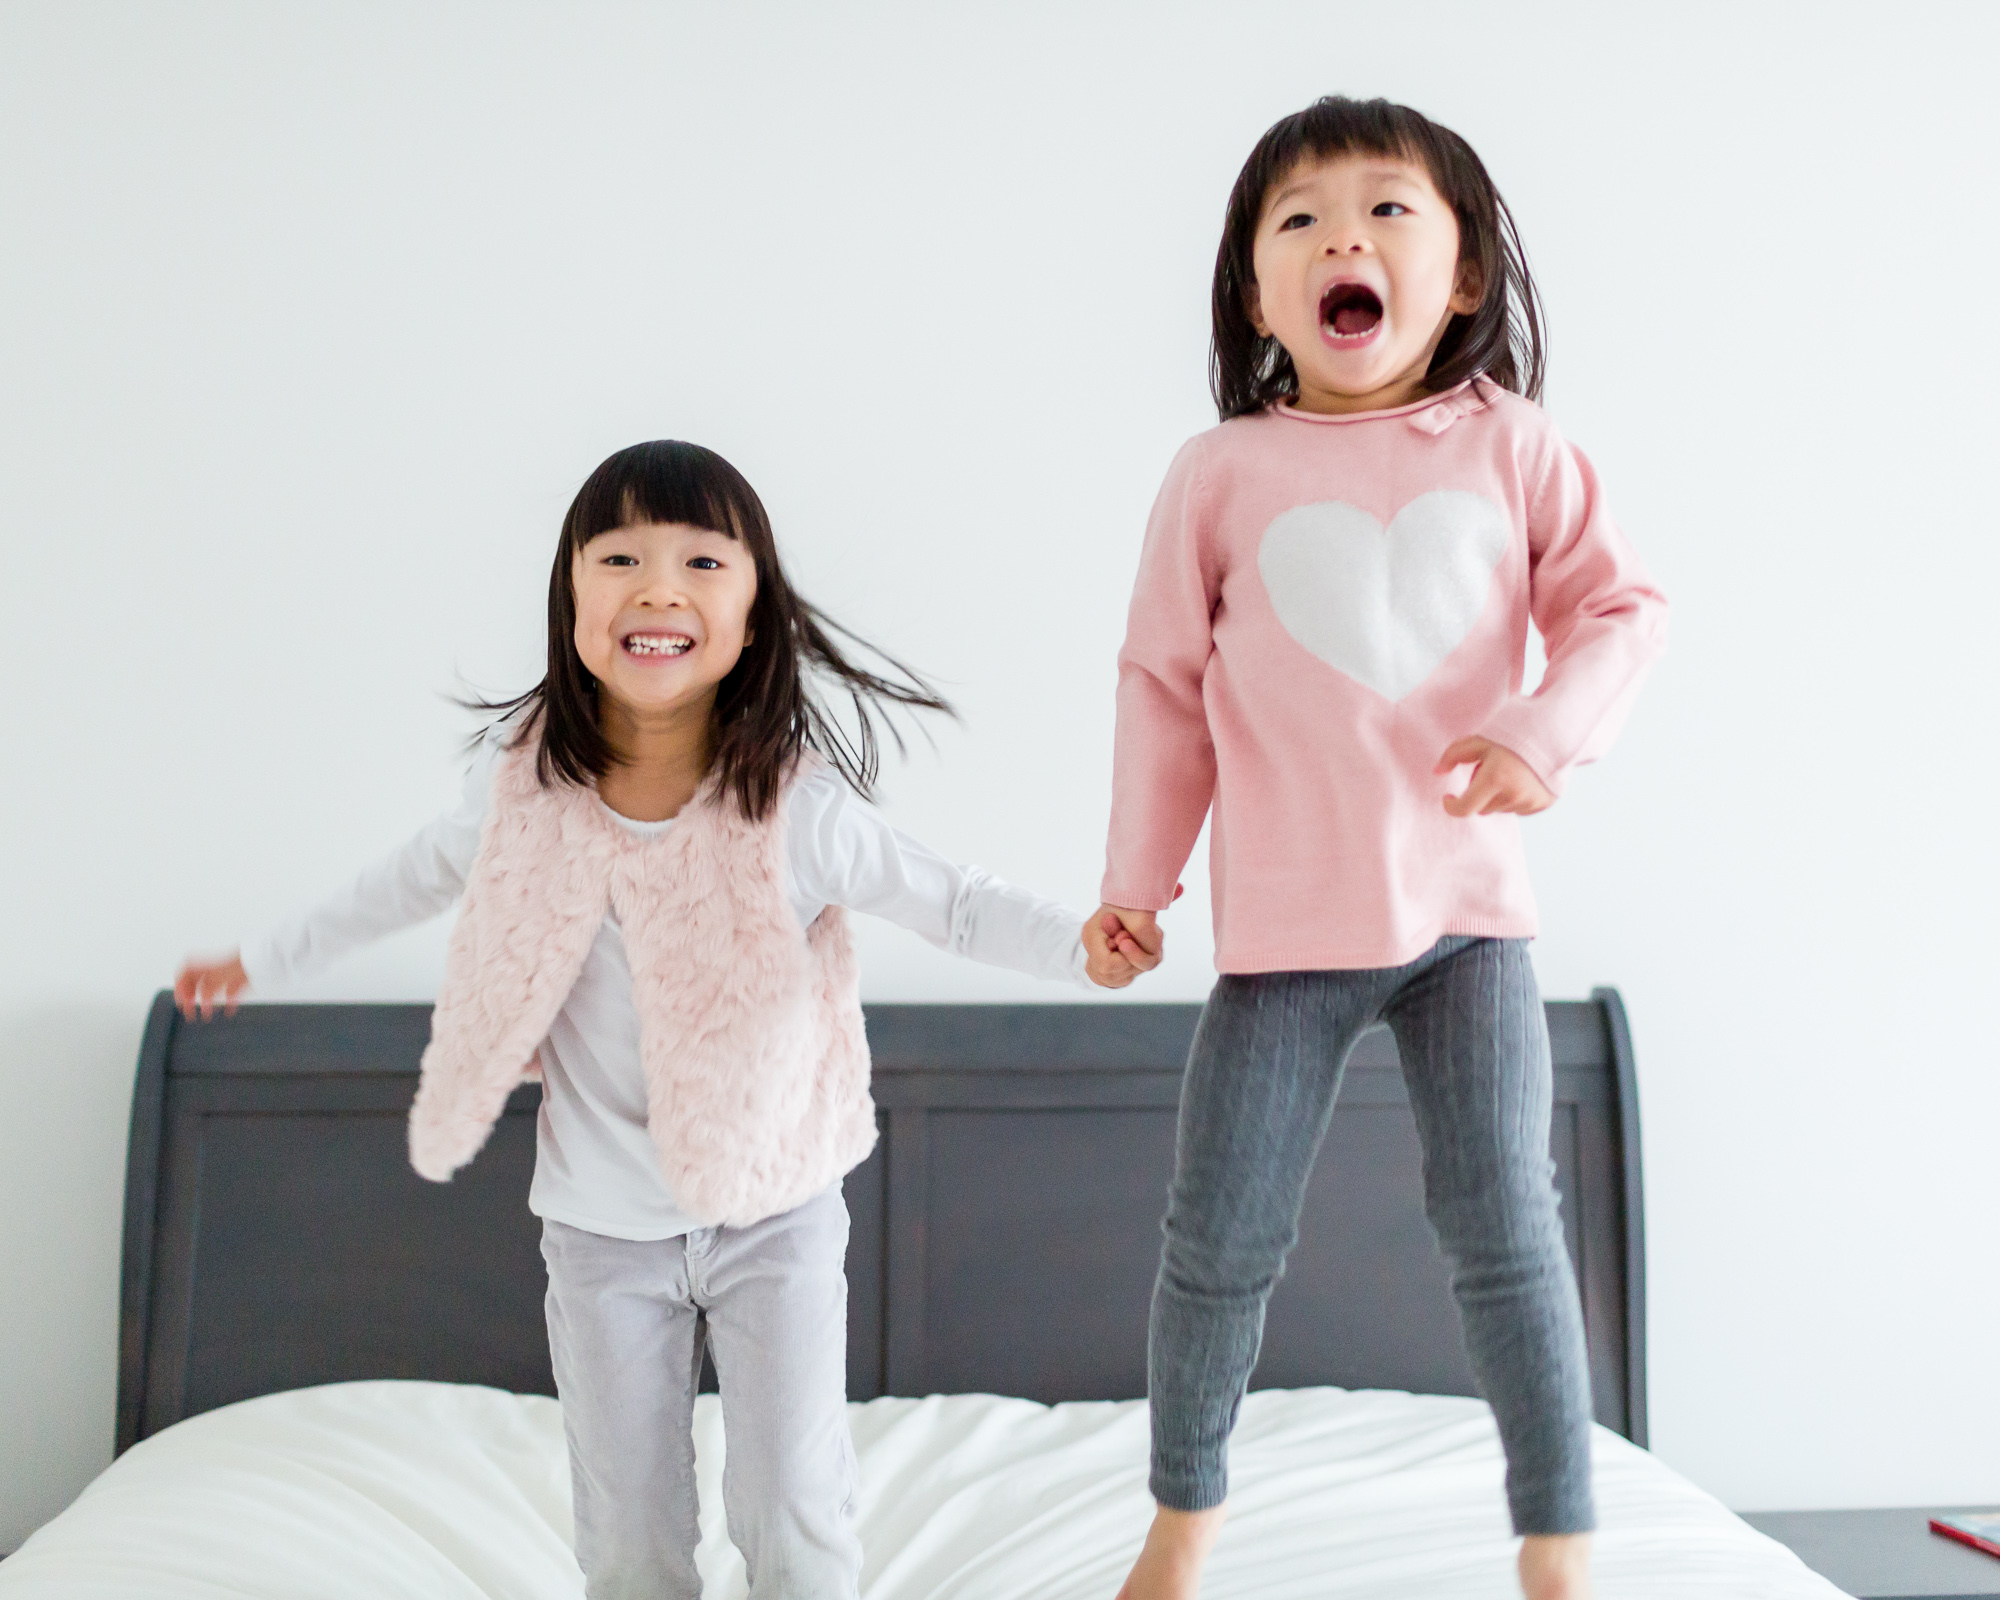 Two sisters jumping on their bed